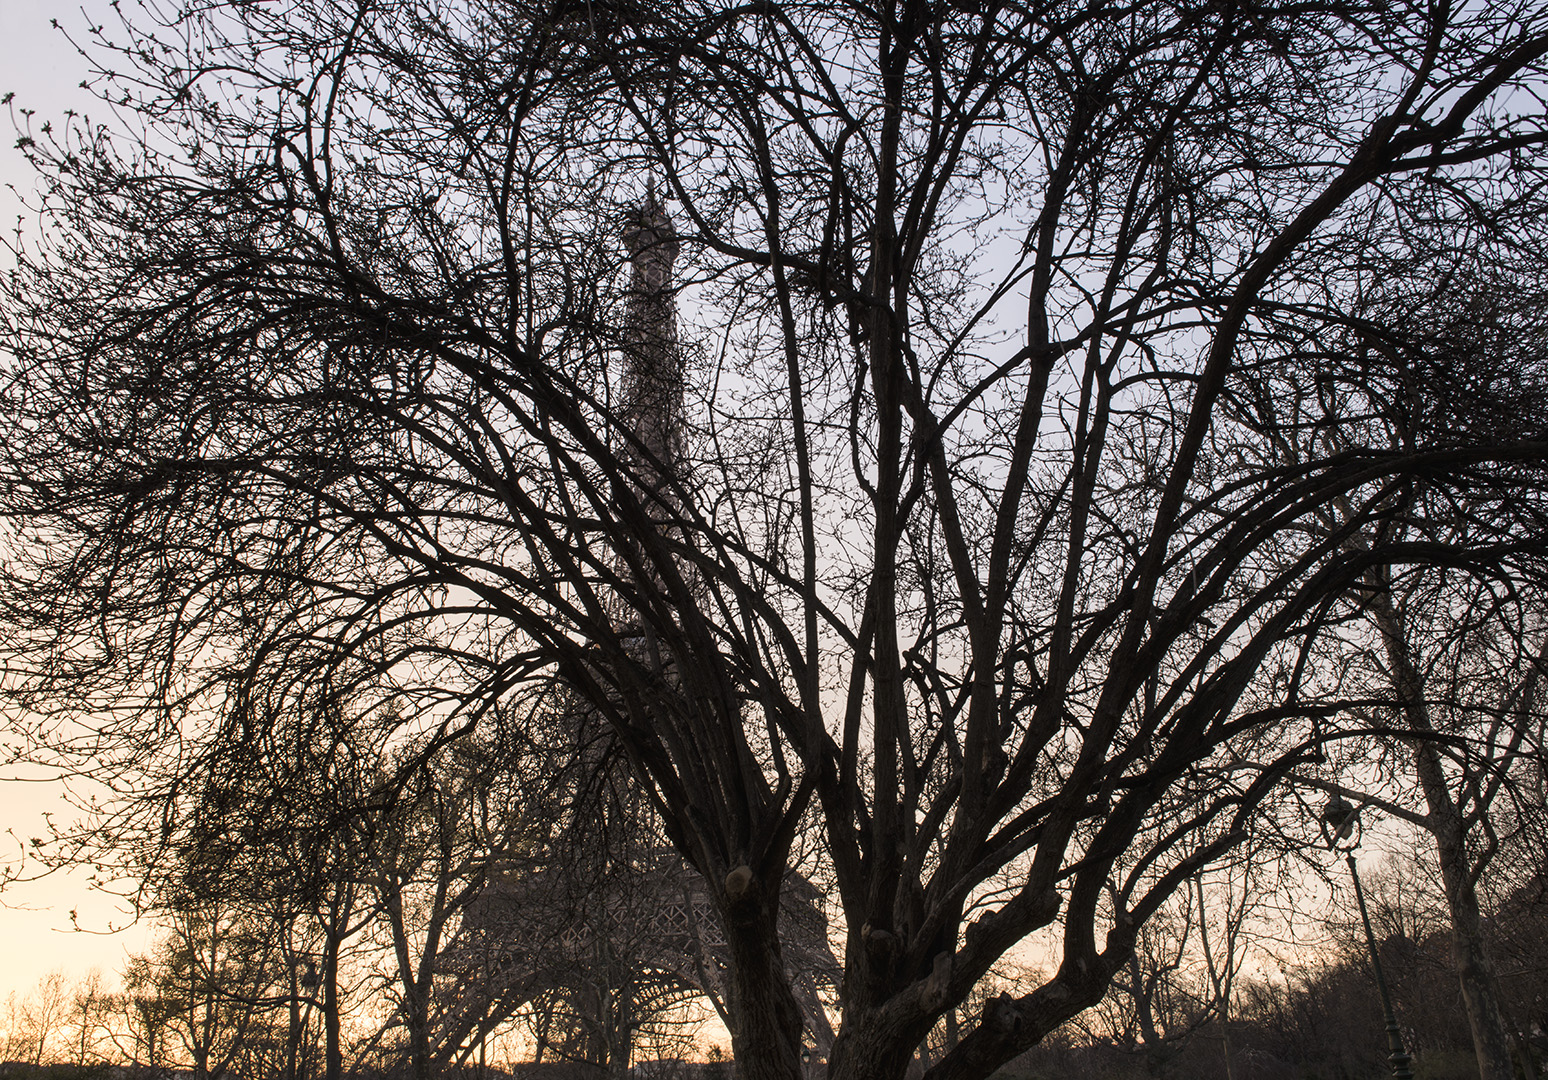 Analogy between the trees surrounding the Eiffel Tower and the Scaffolding of a giant building.